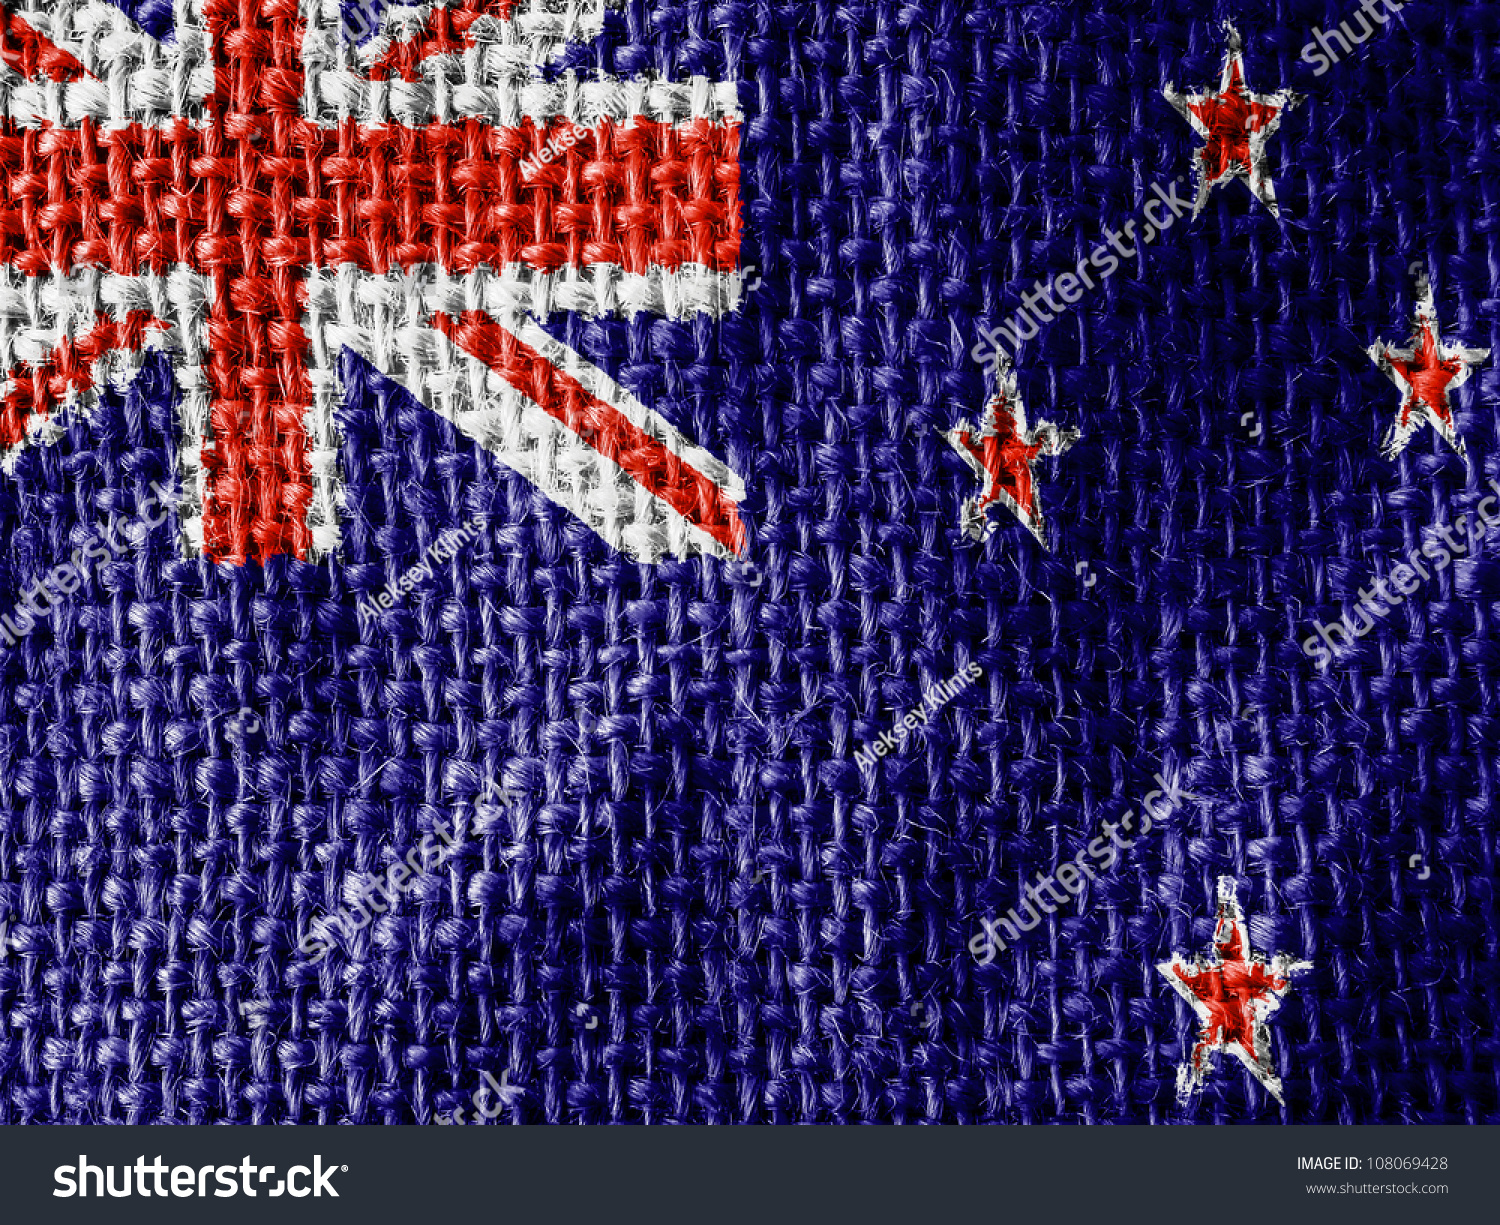 The new zealand flag painted on fabric surface stock photo for Space fabric nz